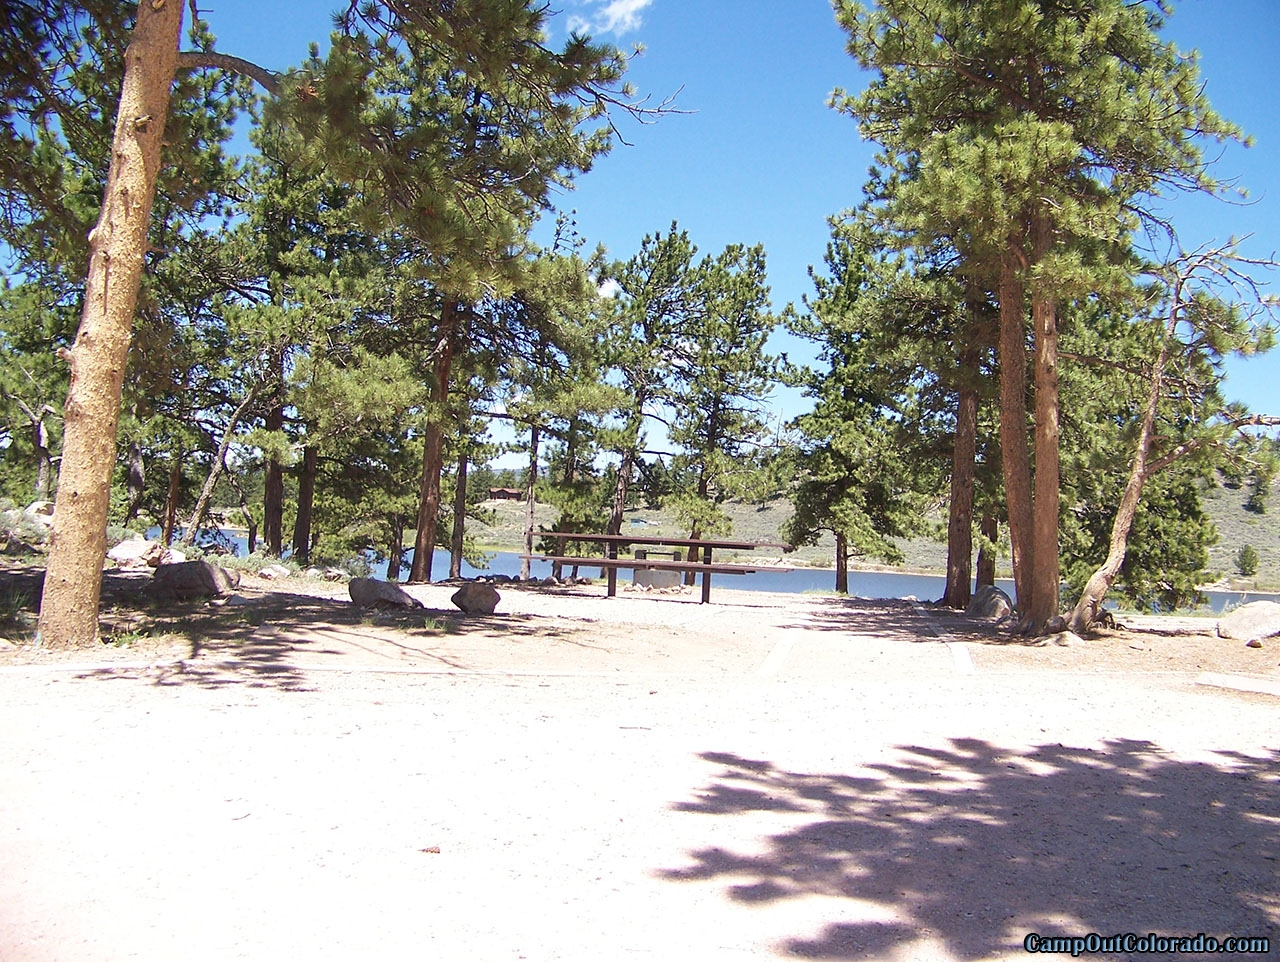 campoutcolorado-west-lake-camper-site